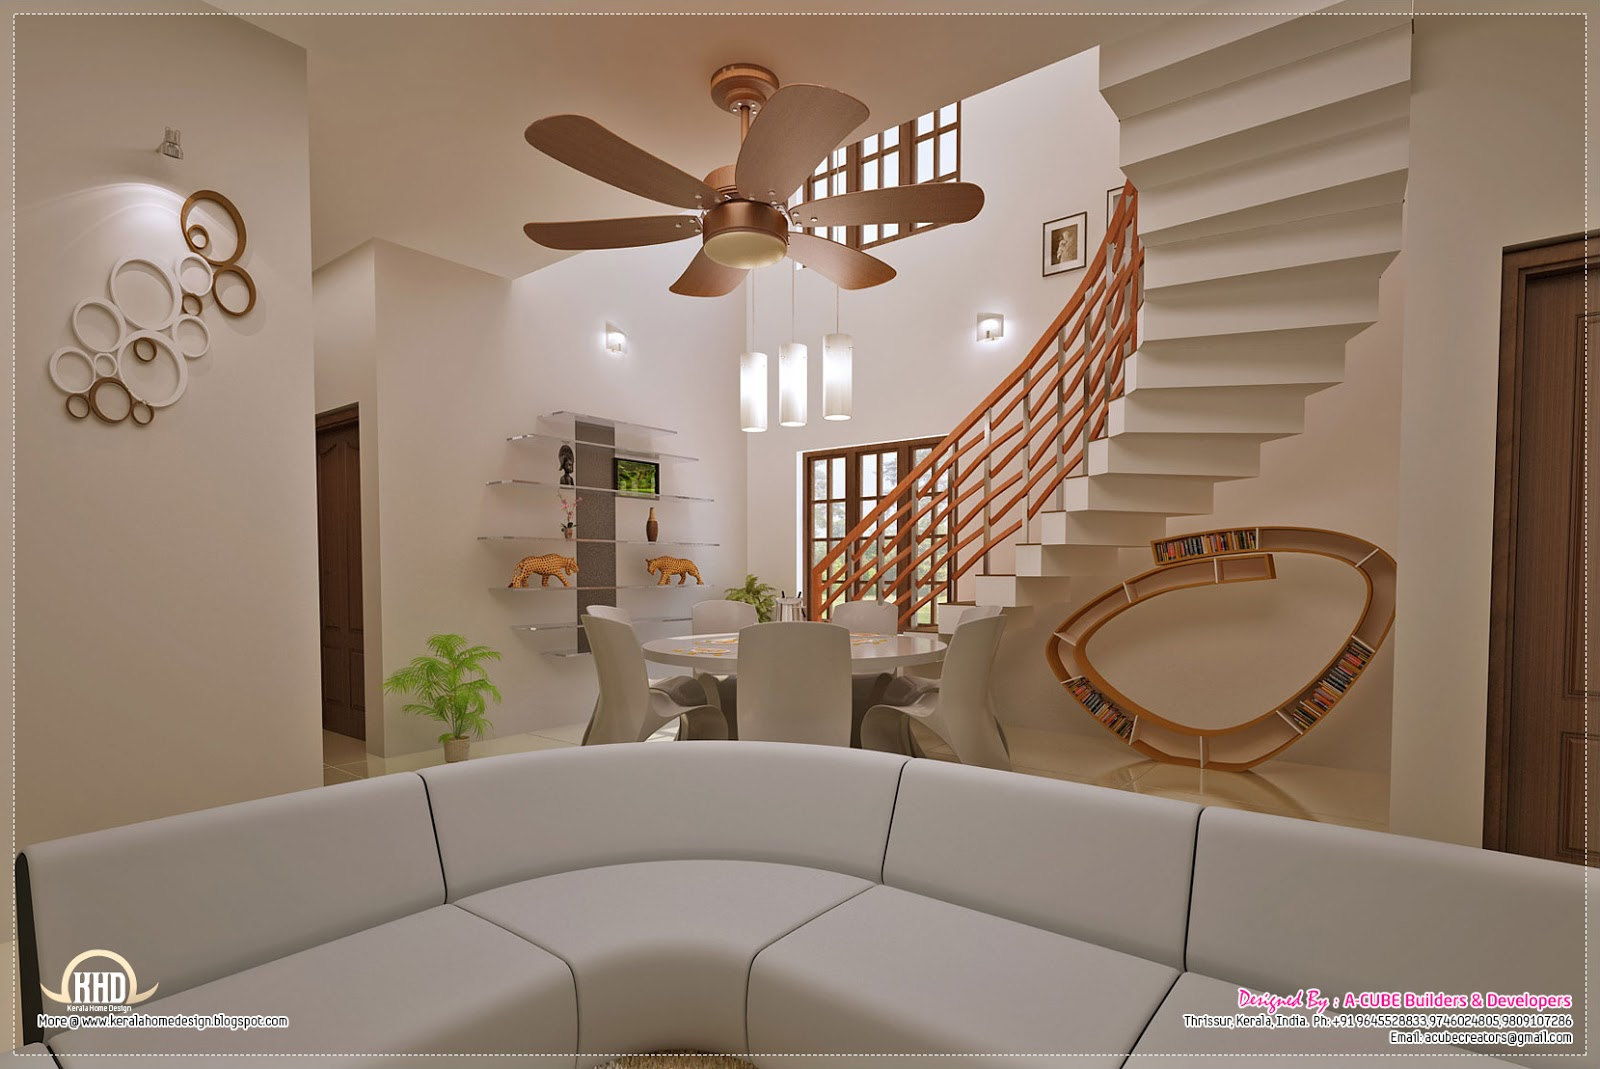 Awesome interior decoration ideas kerala home design and for Interior house decoration ideas